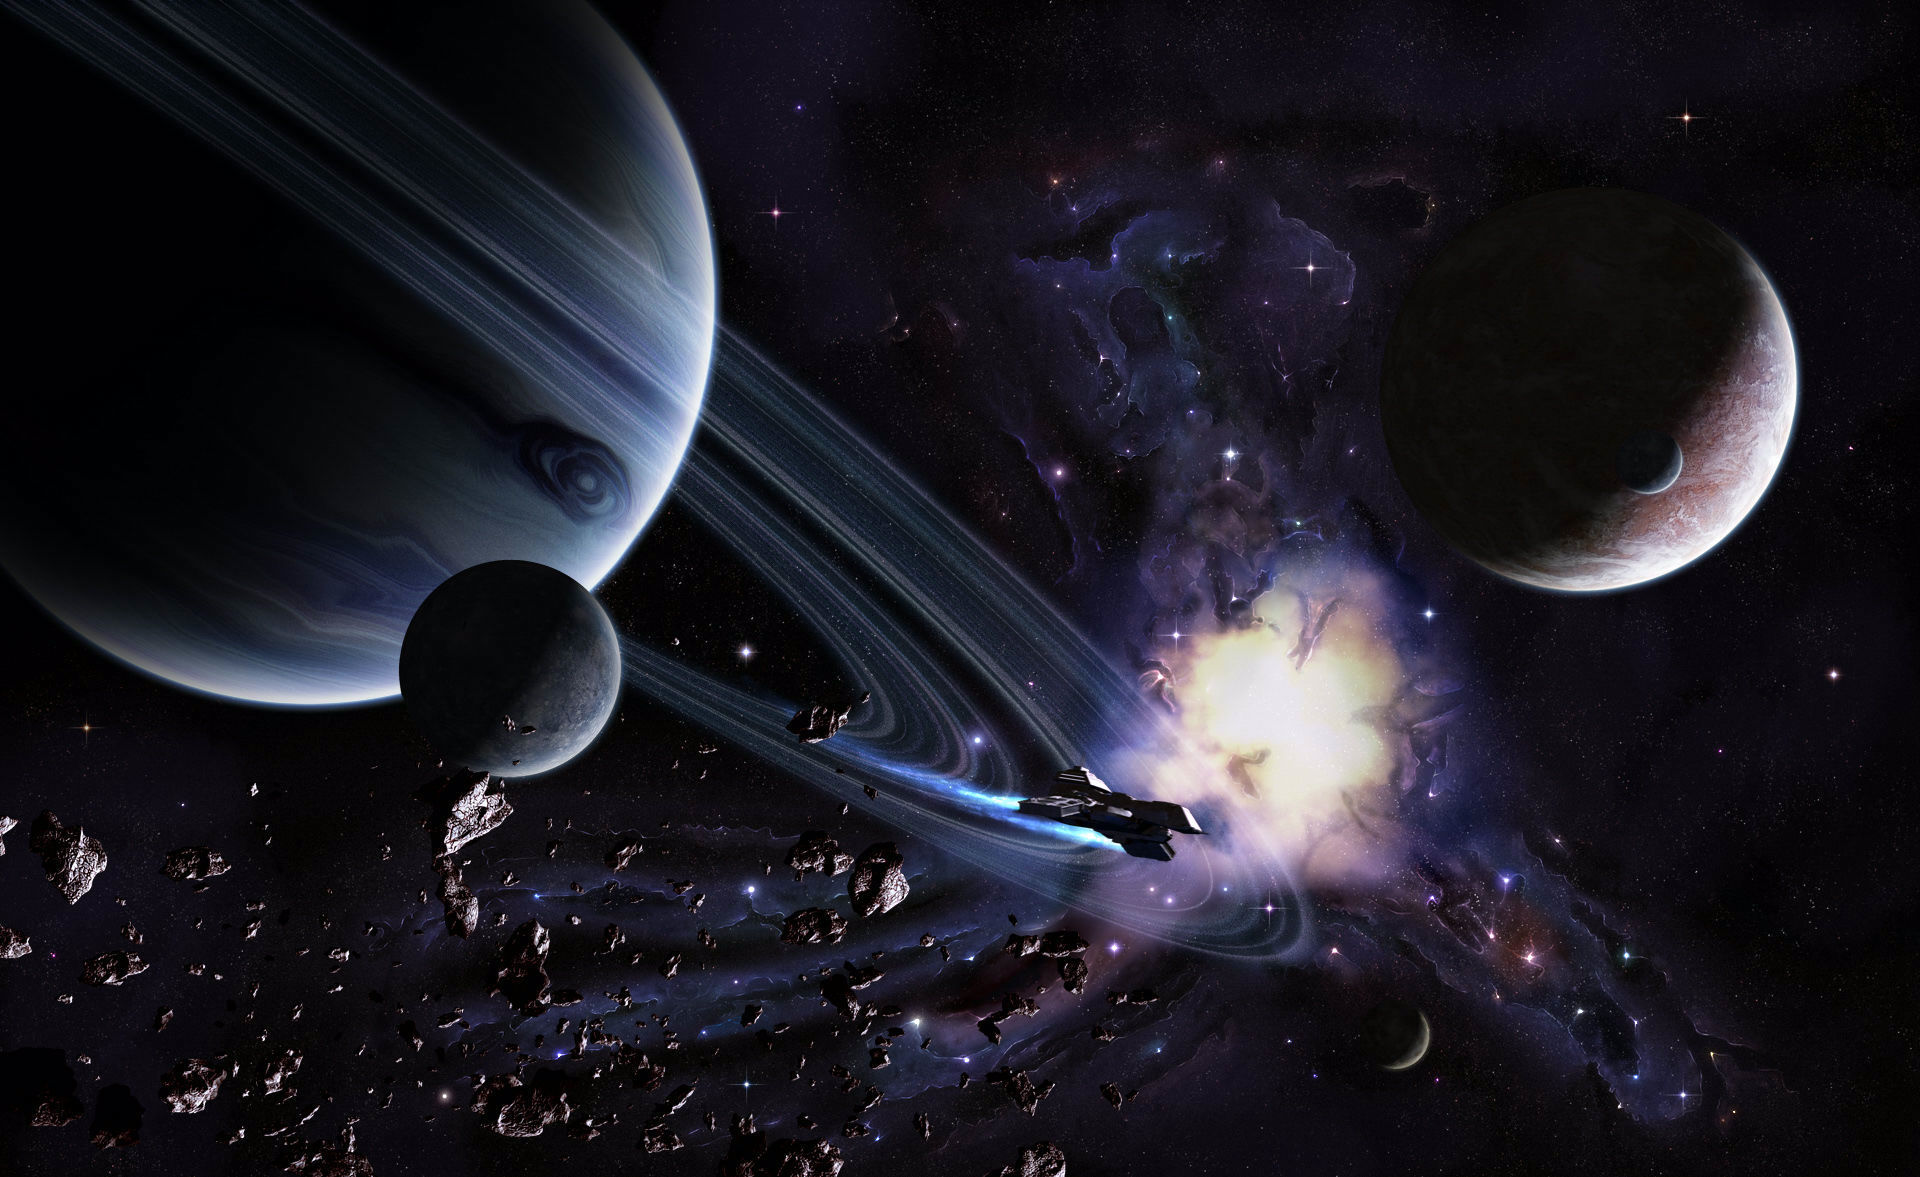 Eve Online Nebula Wiring Diagrams Virtual Reality Circuit Builder Spectra7 Microsystems Is Trending Sci Fi Space Planets Asteroid Spaceship Spacecraft Near 2 Neural Remap